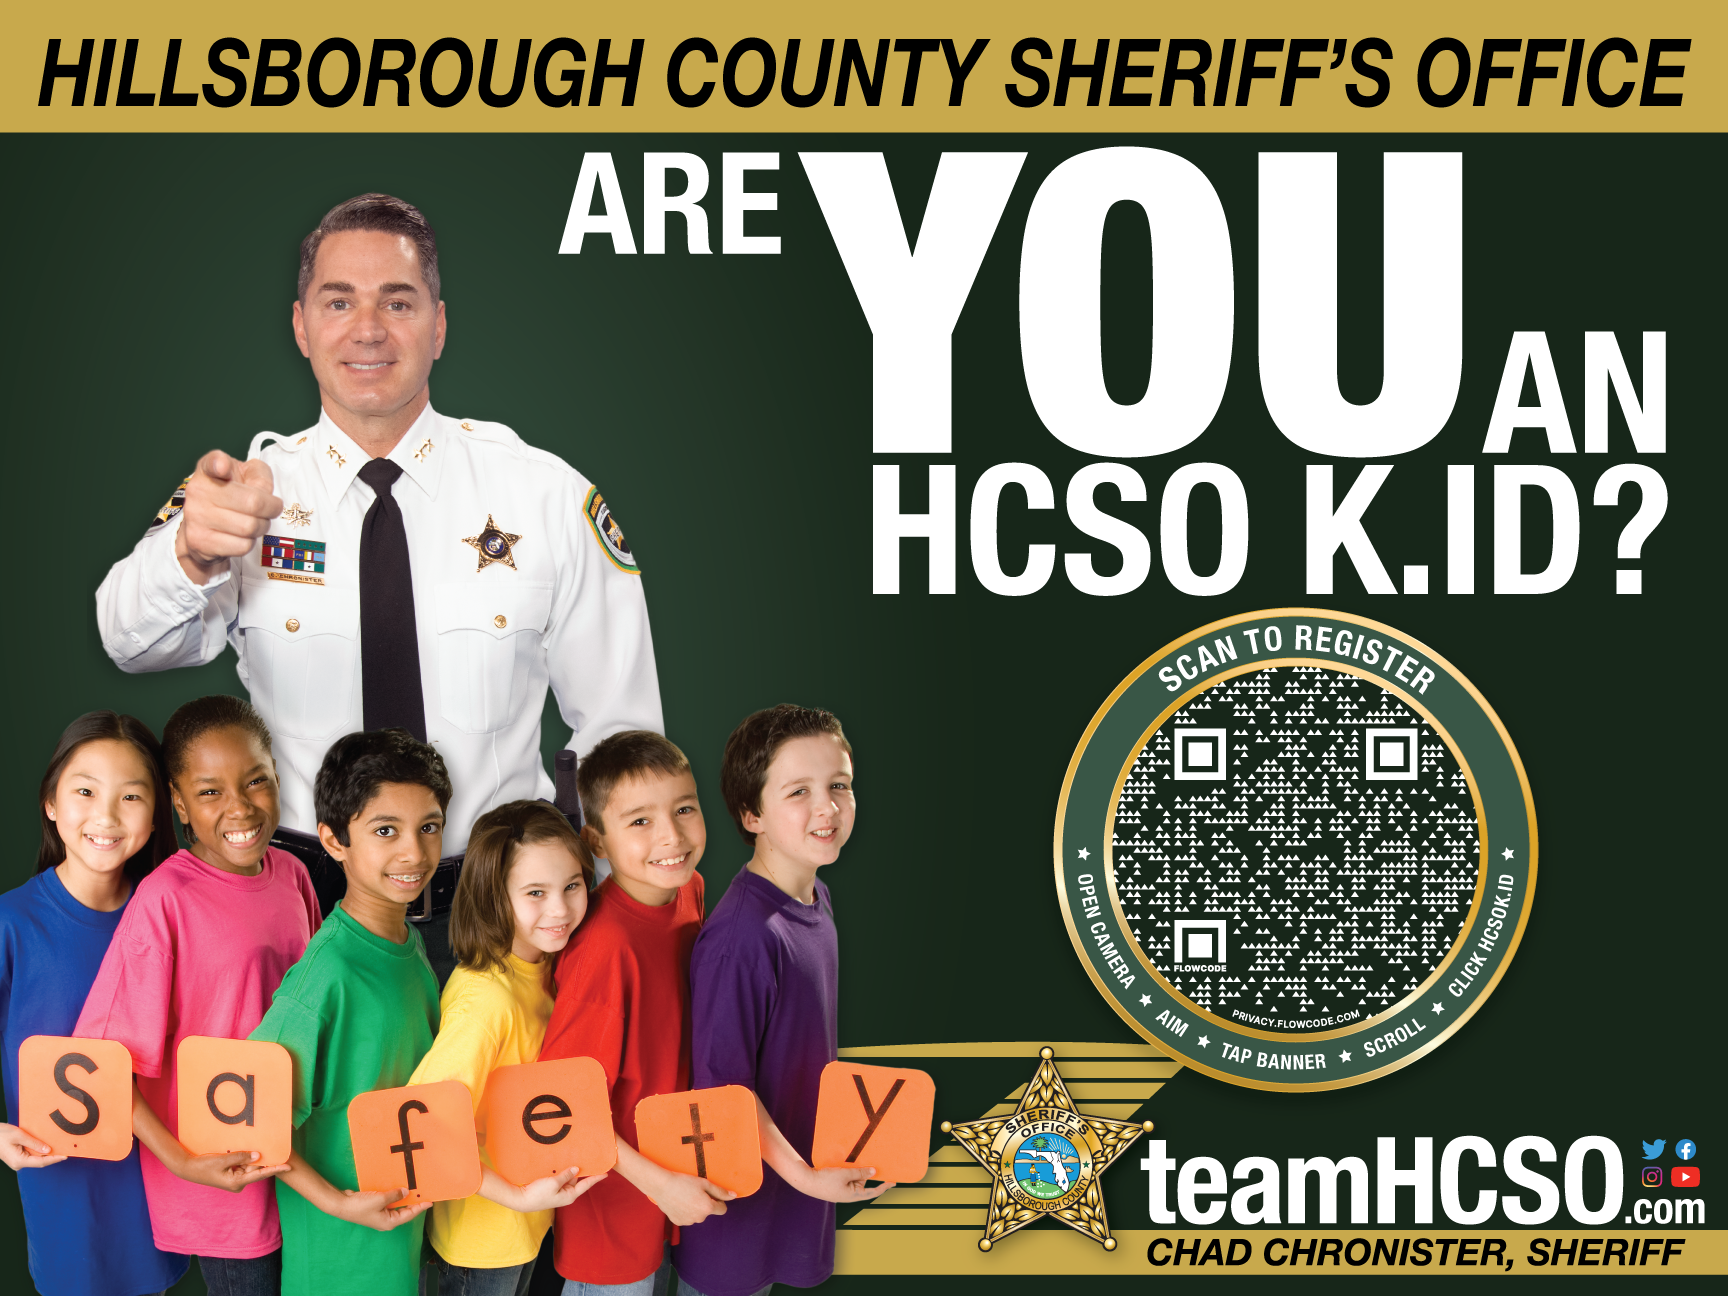 HCSO K.ID Registration